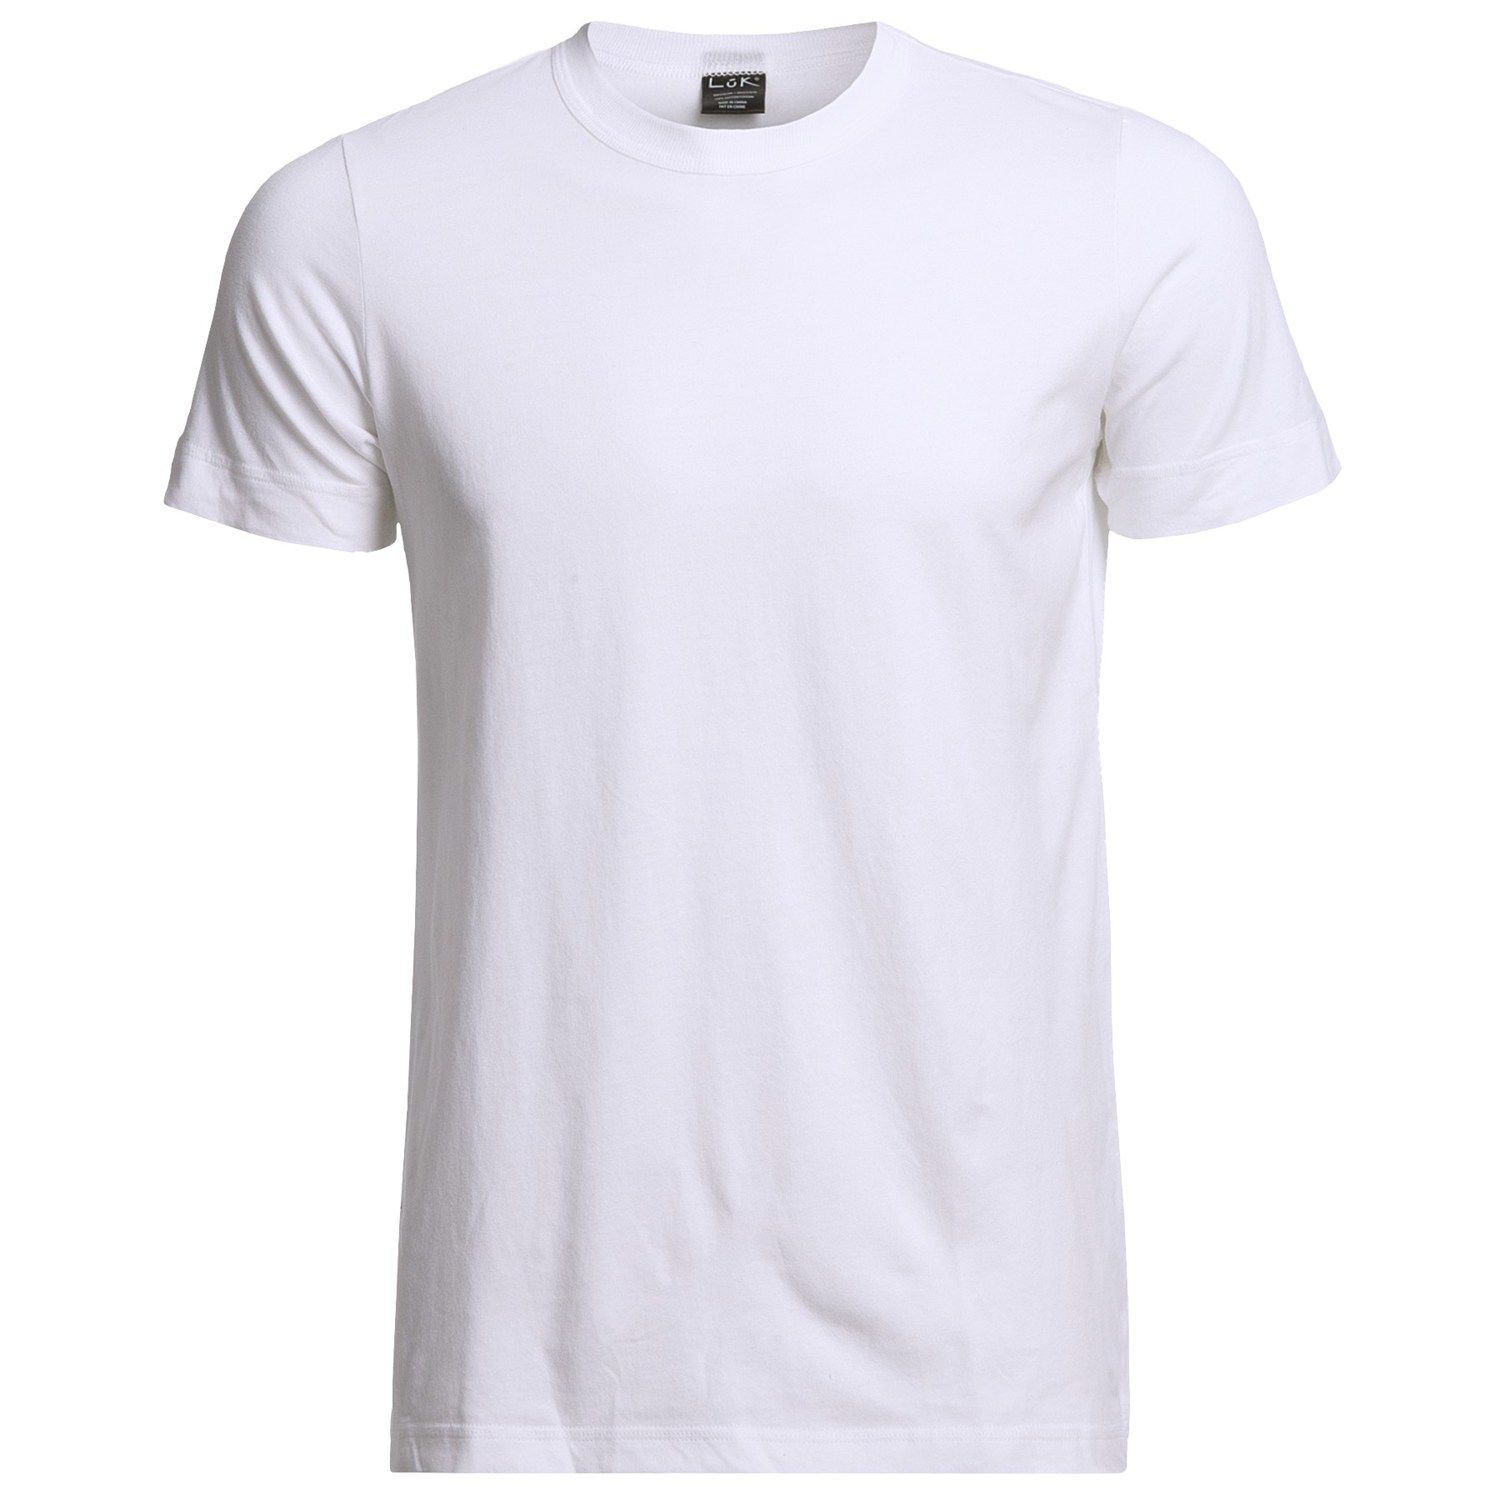 This is a simple white cotton t-shirt. Hmmm... I wonder what it's ...